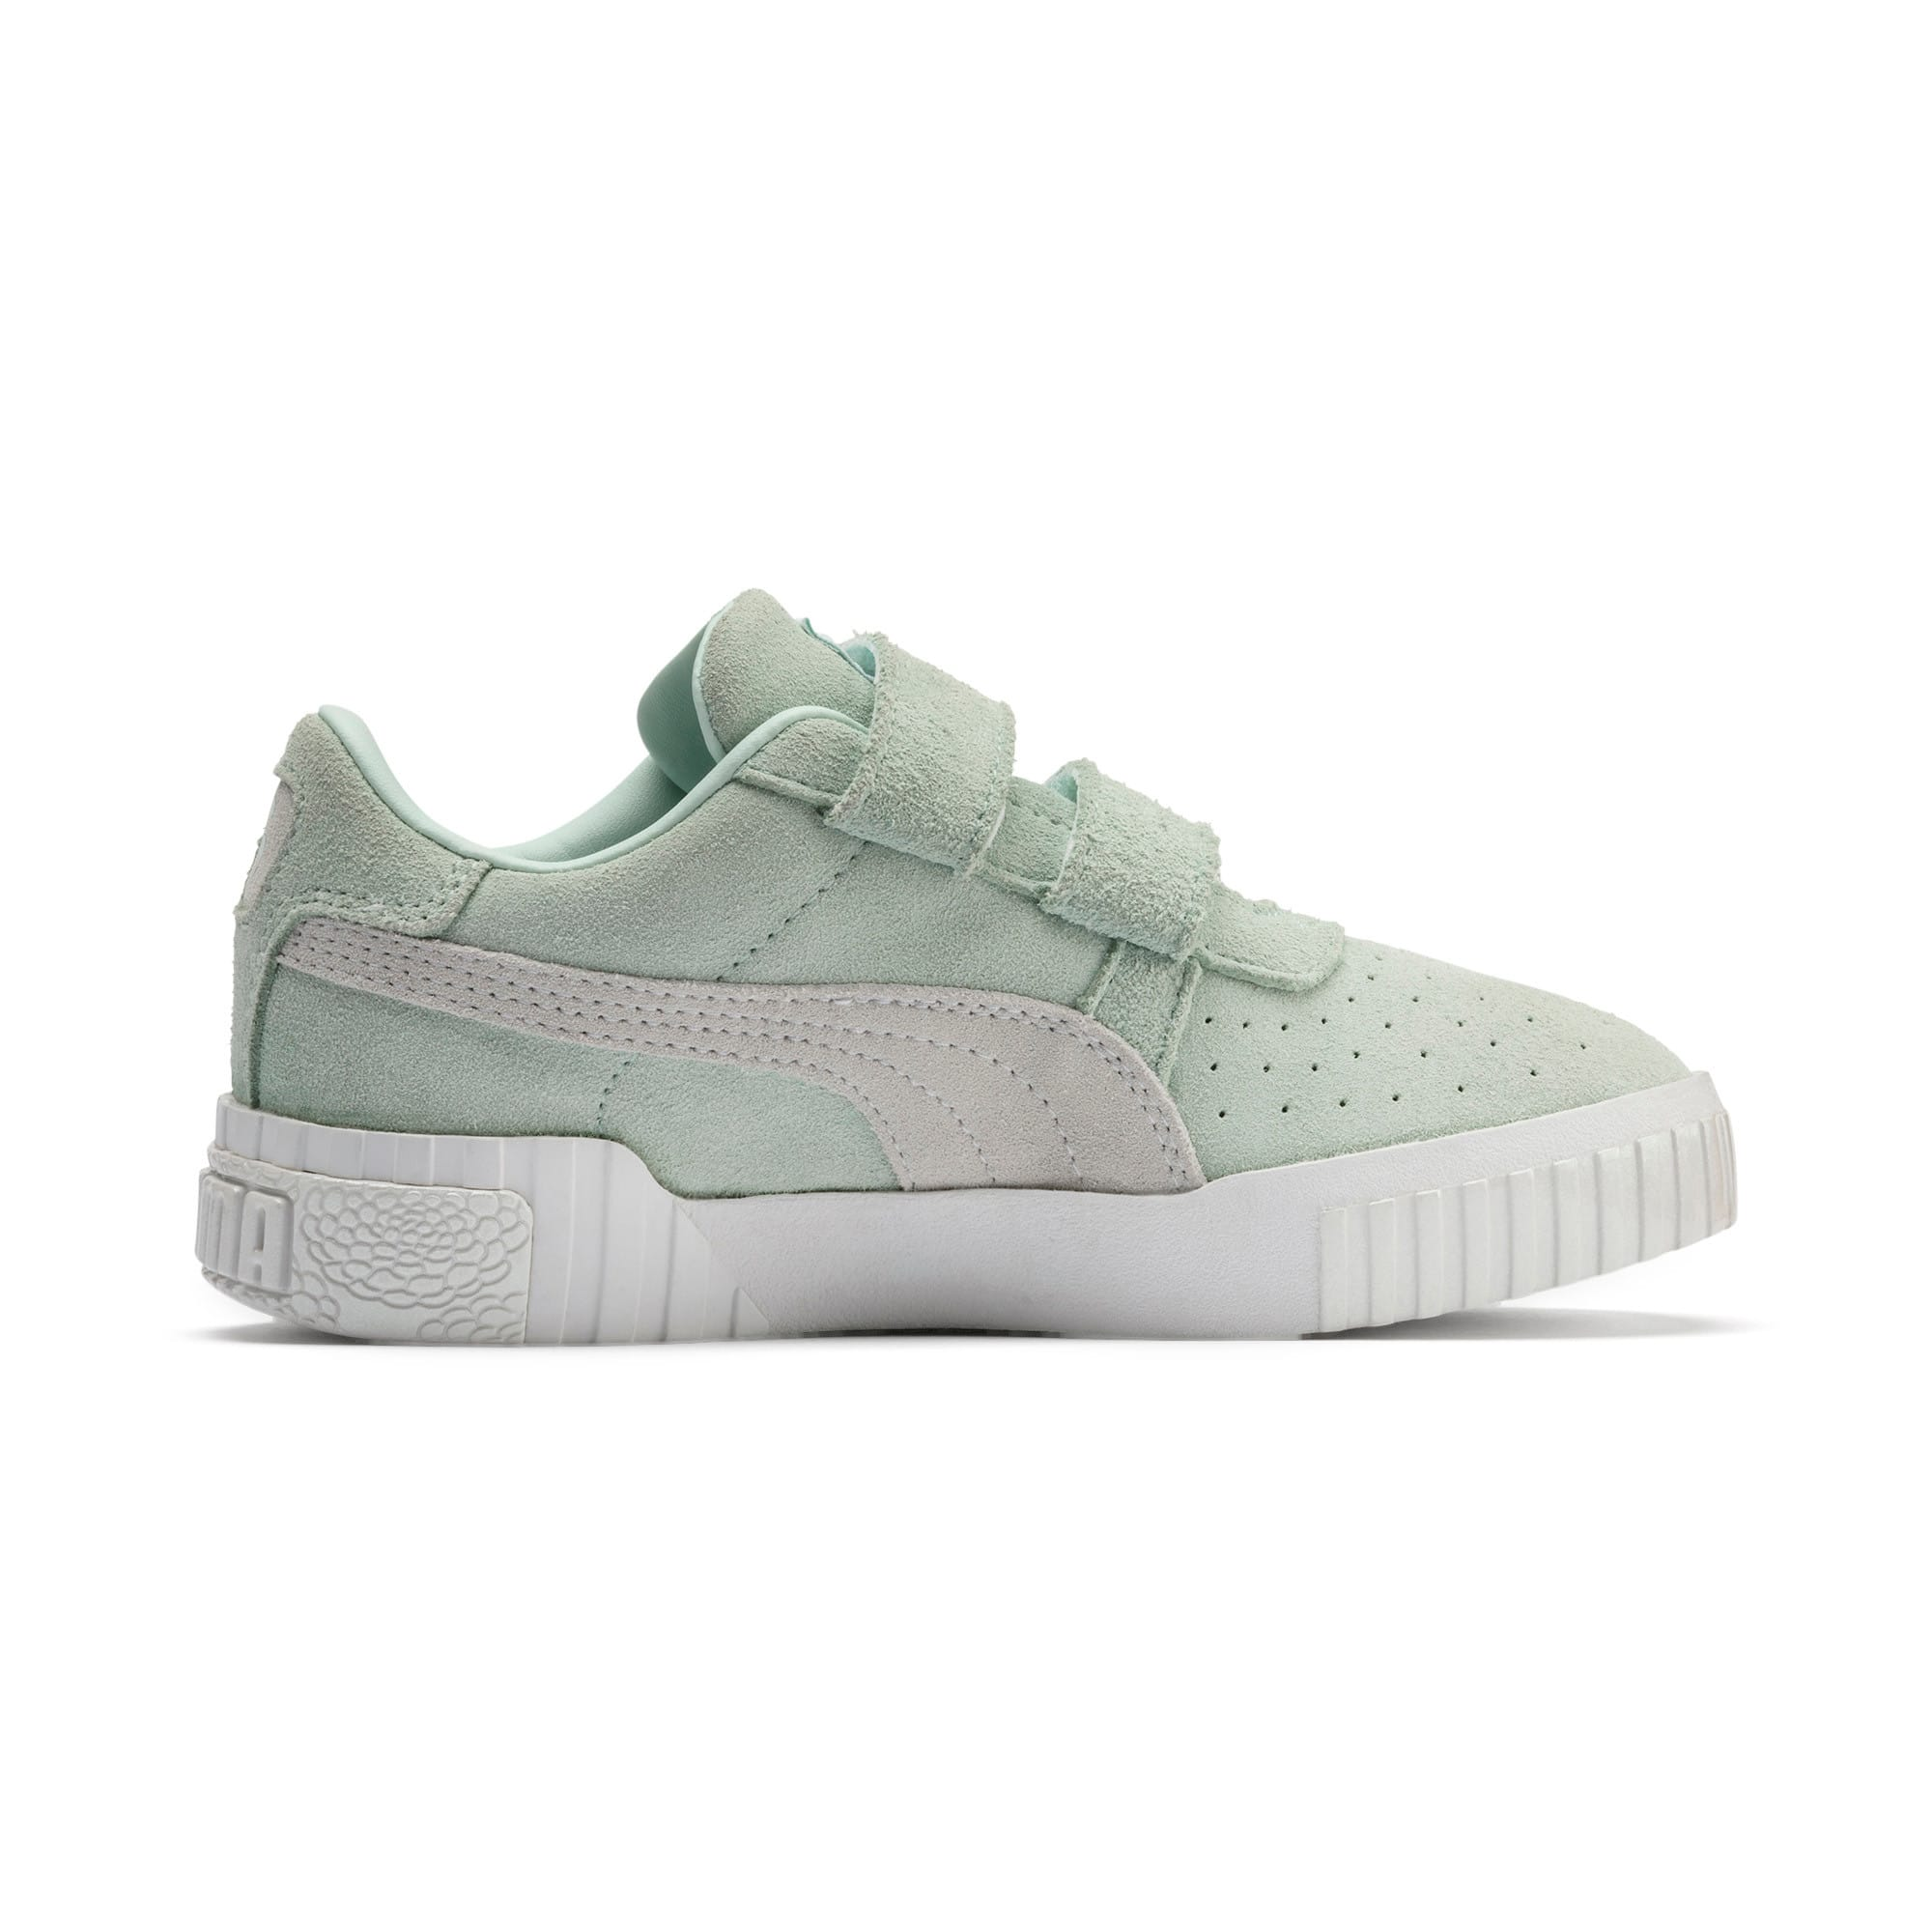 Thumbnail 5 of PUMA x Selena Gomez Kids' Cali Patent Trainers, Fair Aqua-Puma White, medium